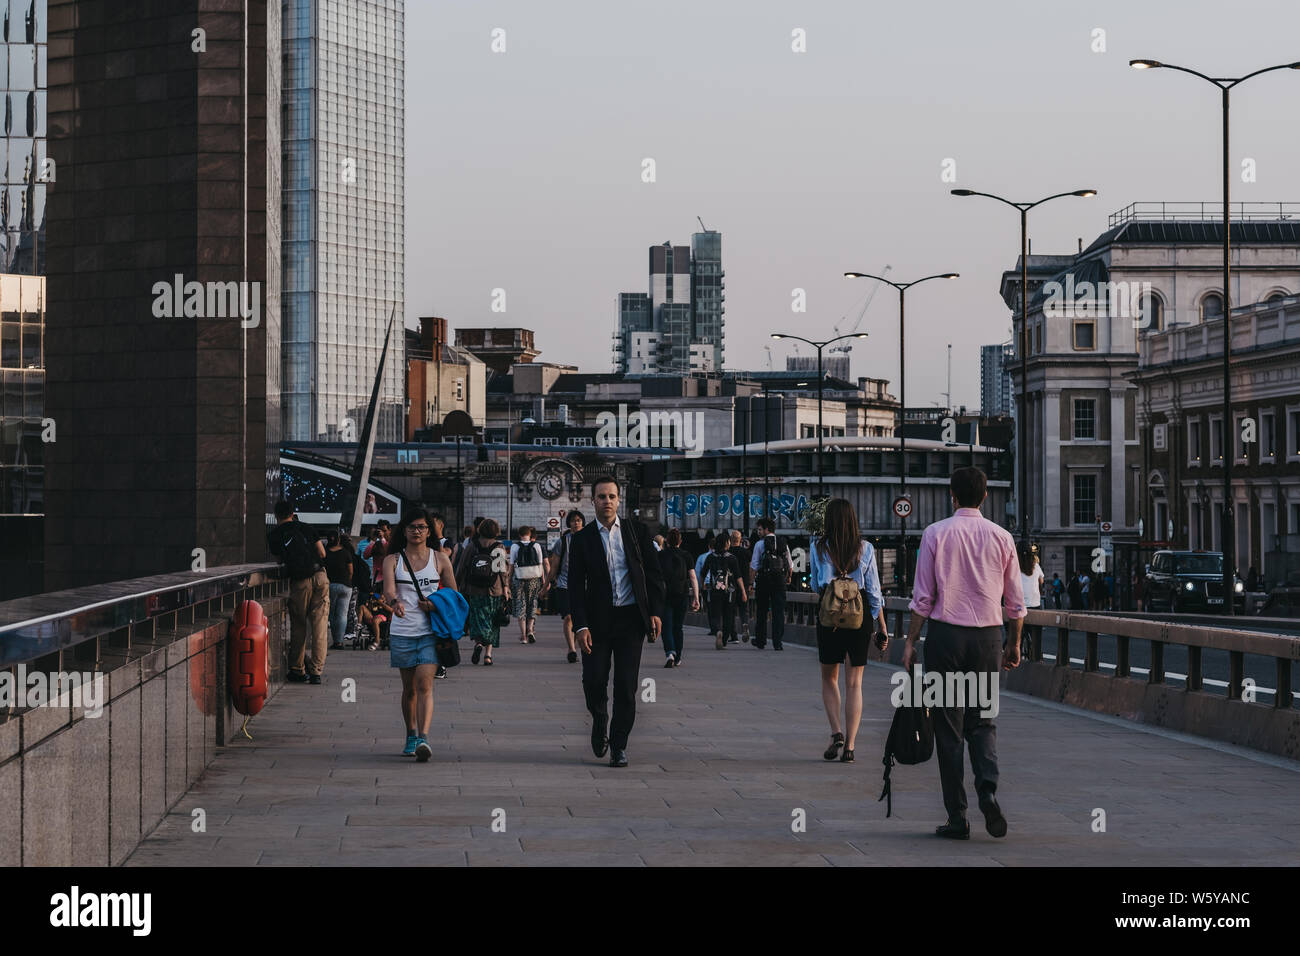 London, UK - July 23, 2019: People walking on London Bridge during blue hour, selective focus, city on the background. London is one of the most visit Stock Photo